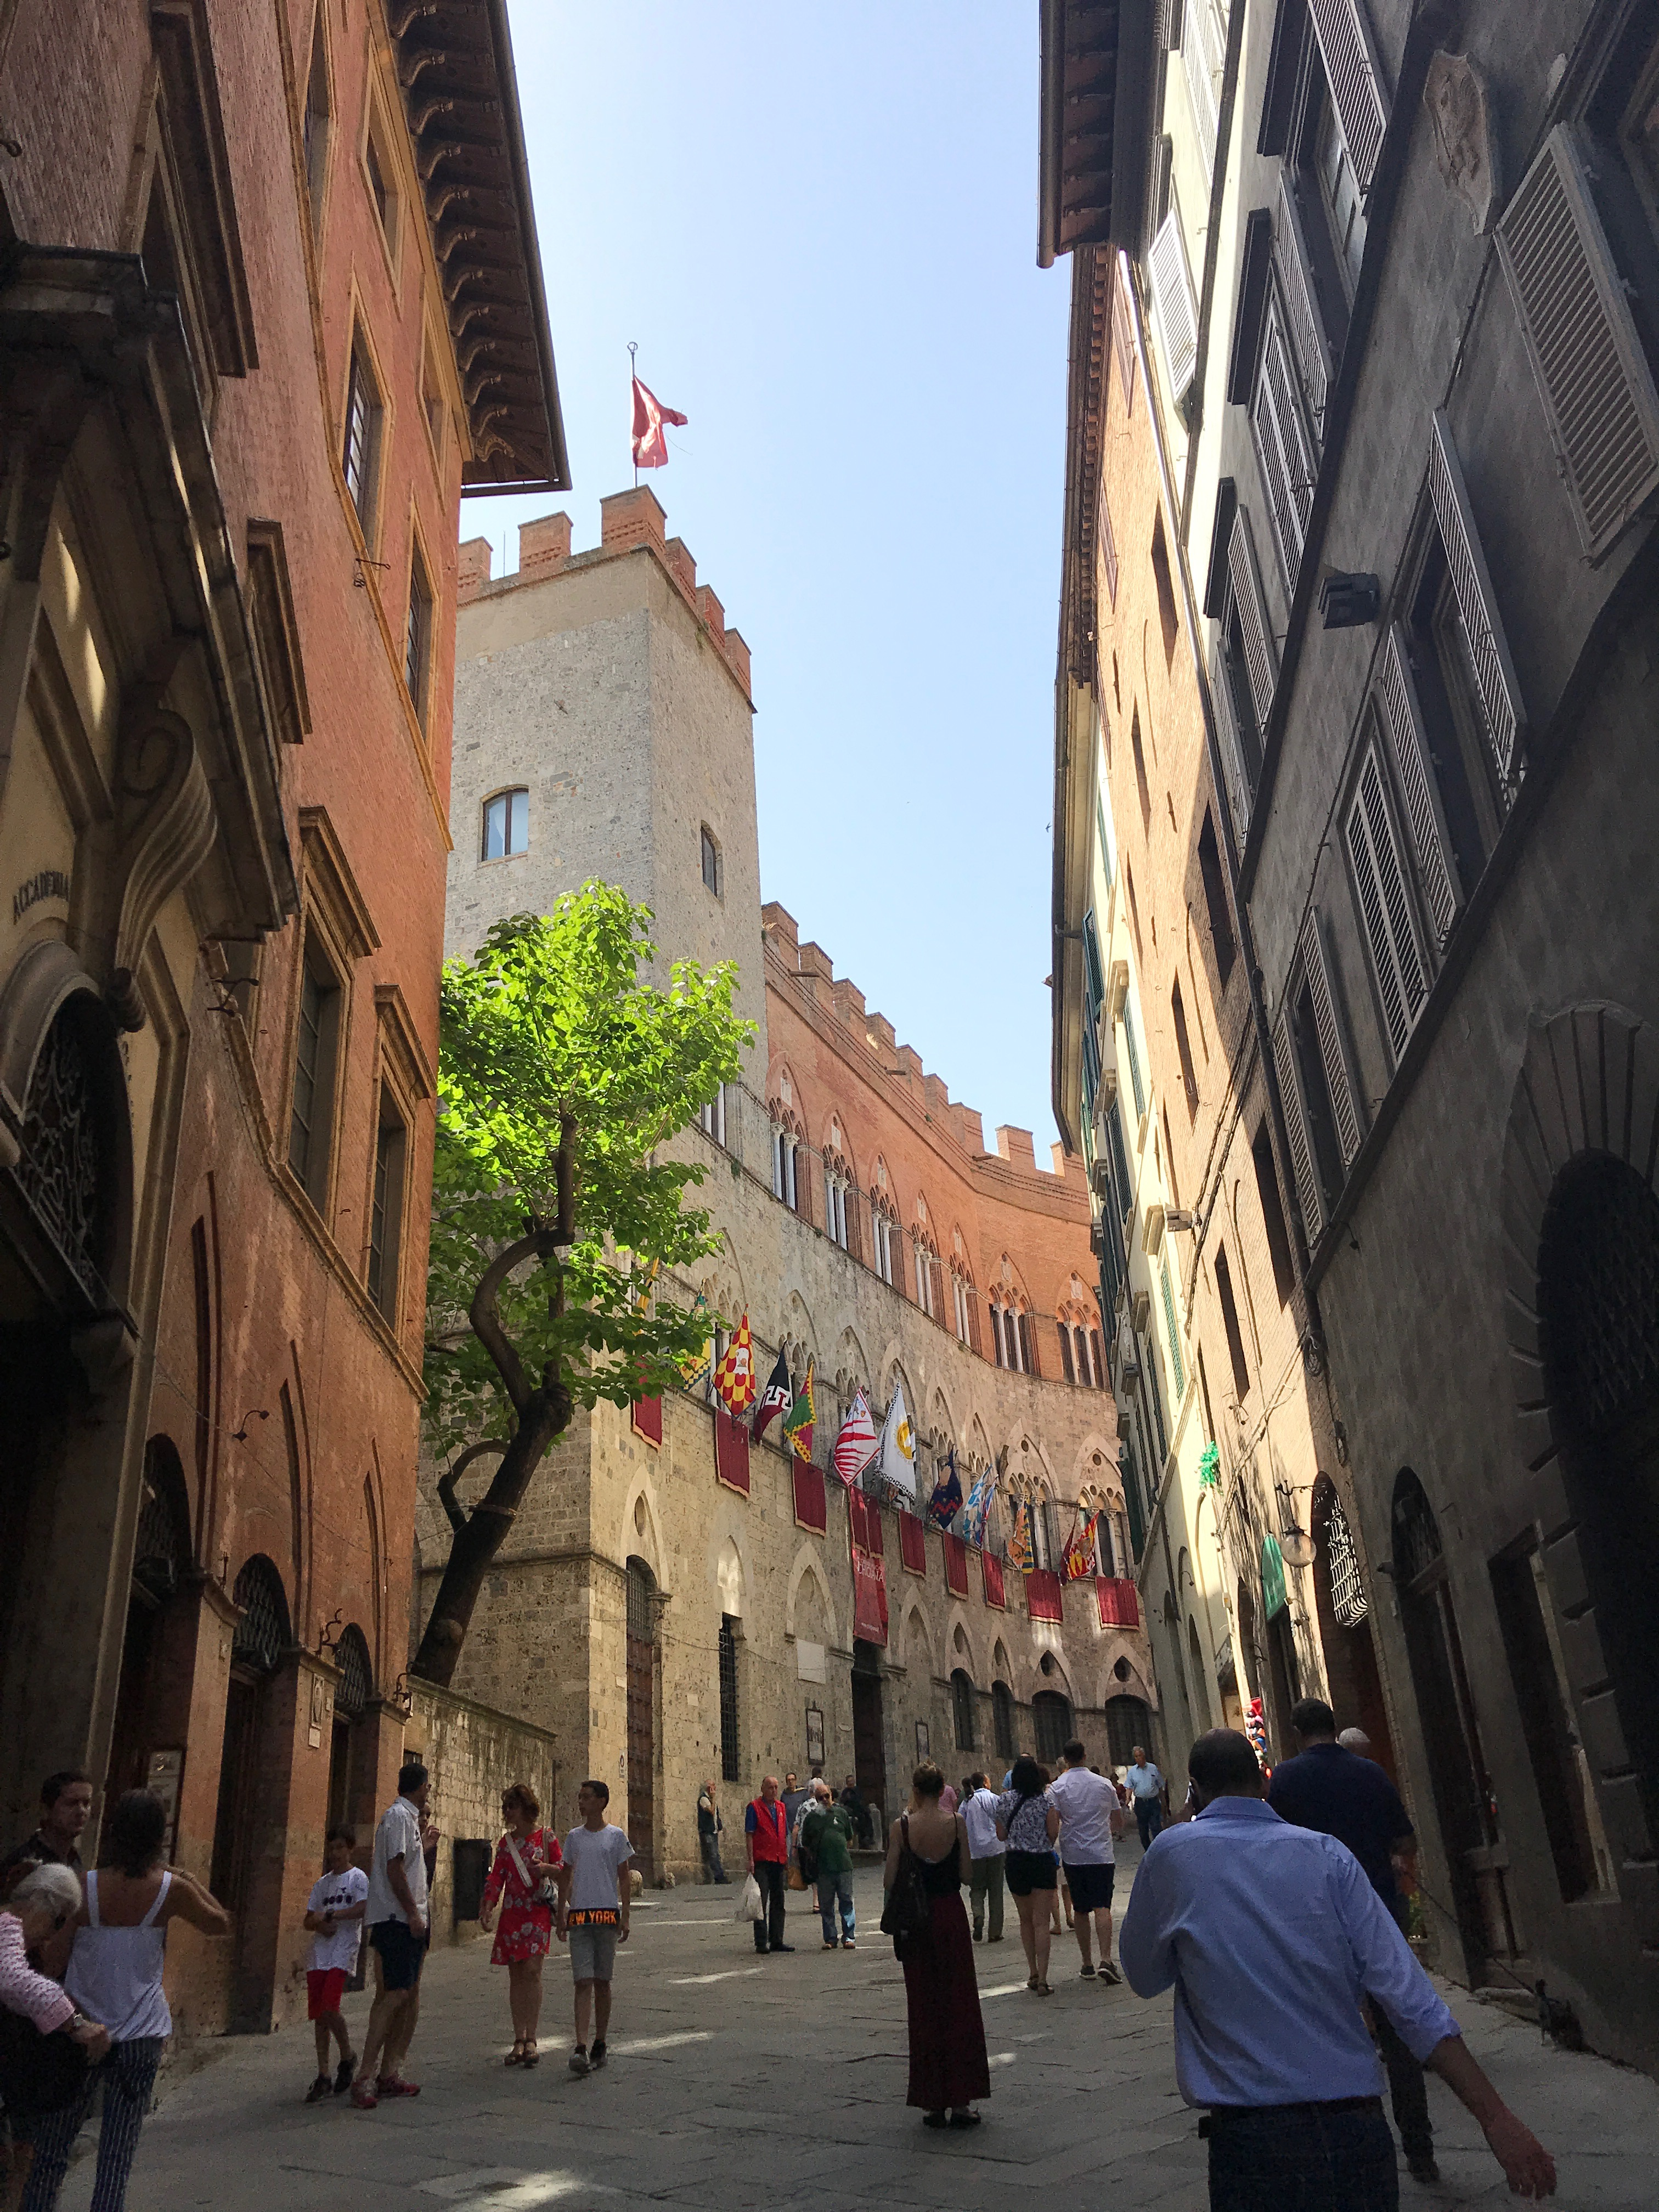 Streets of Siena during Palio di Siena